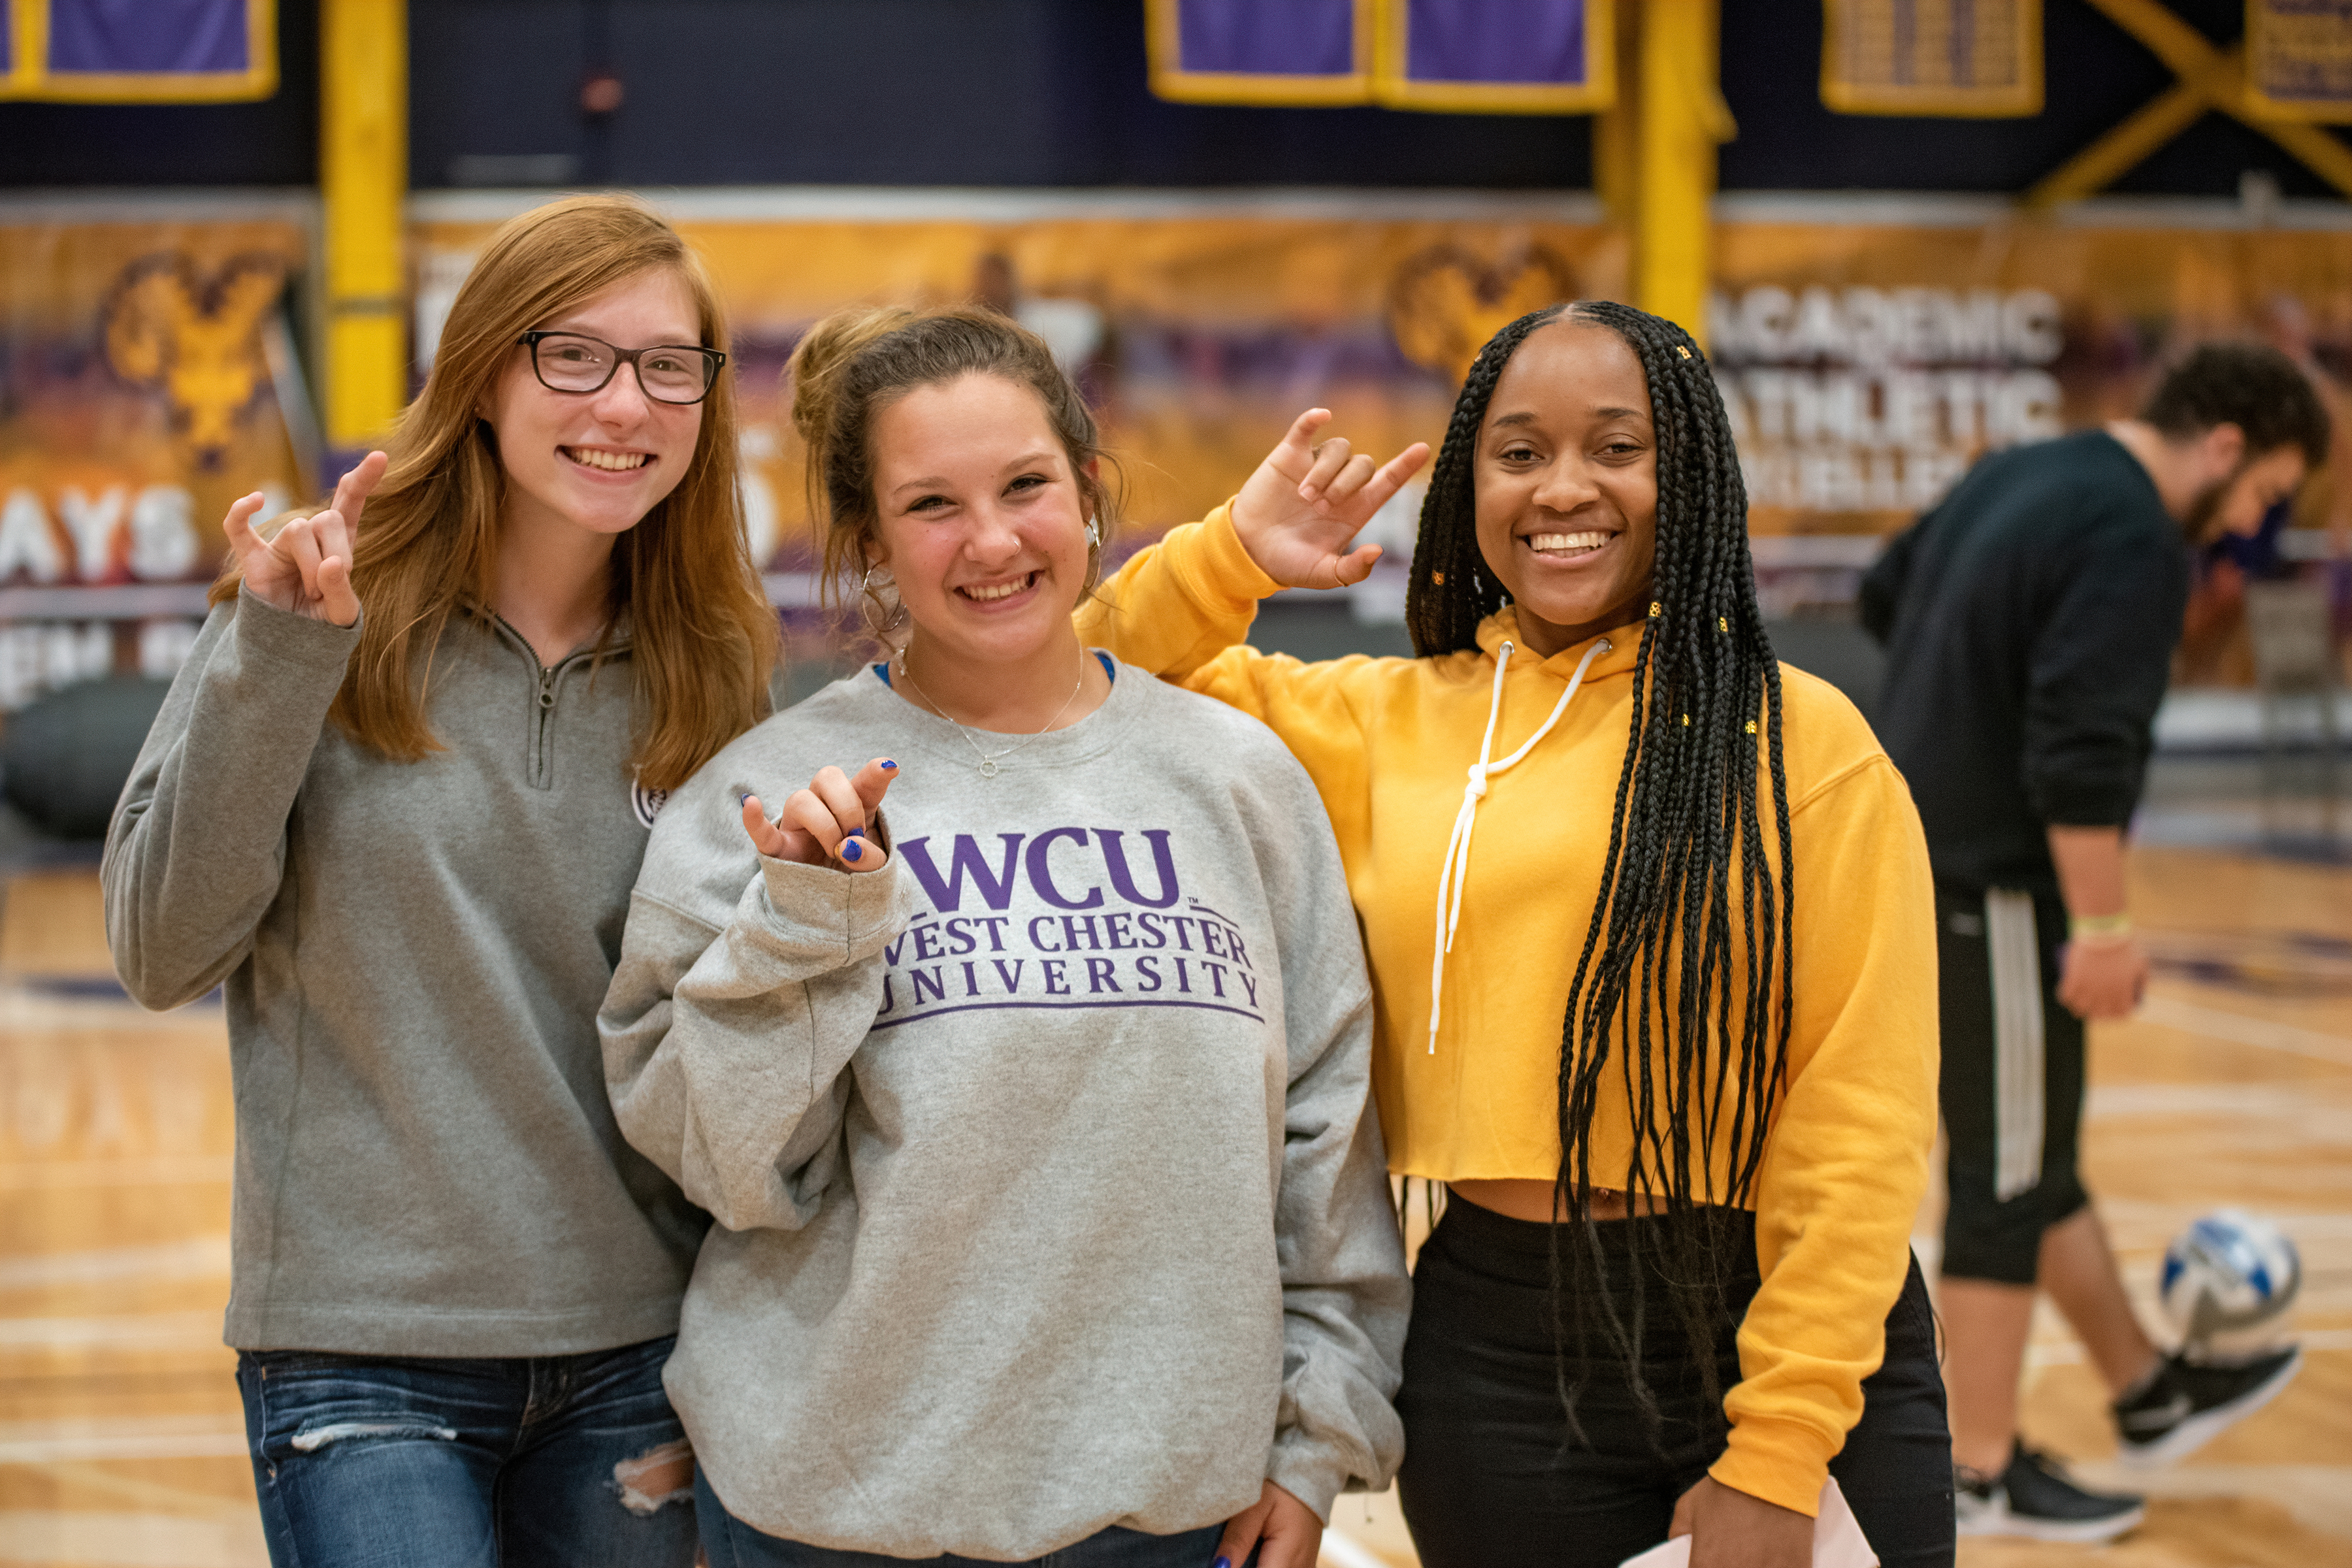 A fall semester pep rally at West Chester University.